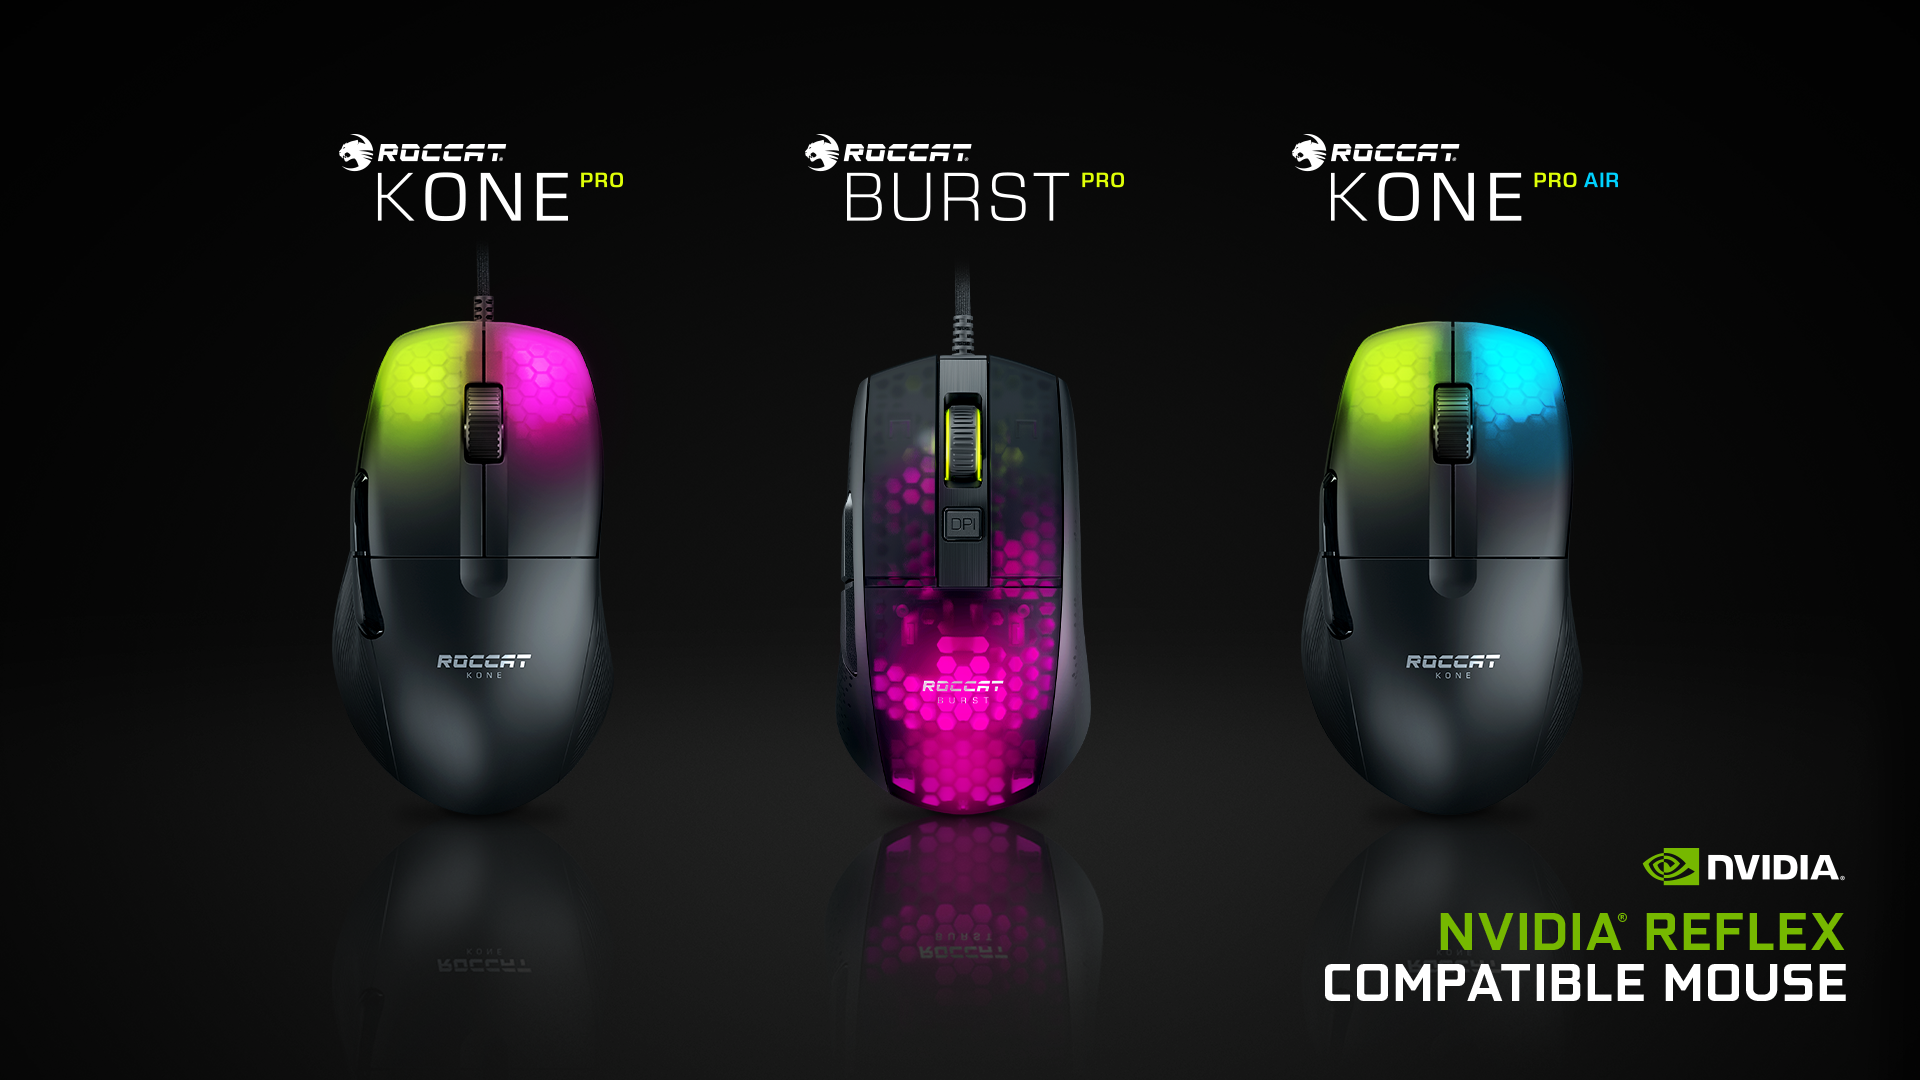 Roccats Pro Line Of PC Gaming Mice Support NVIDIA's Reflex Latency Analyser